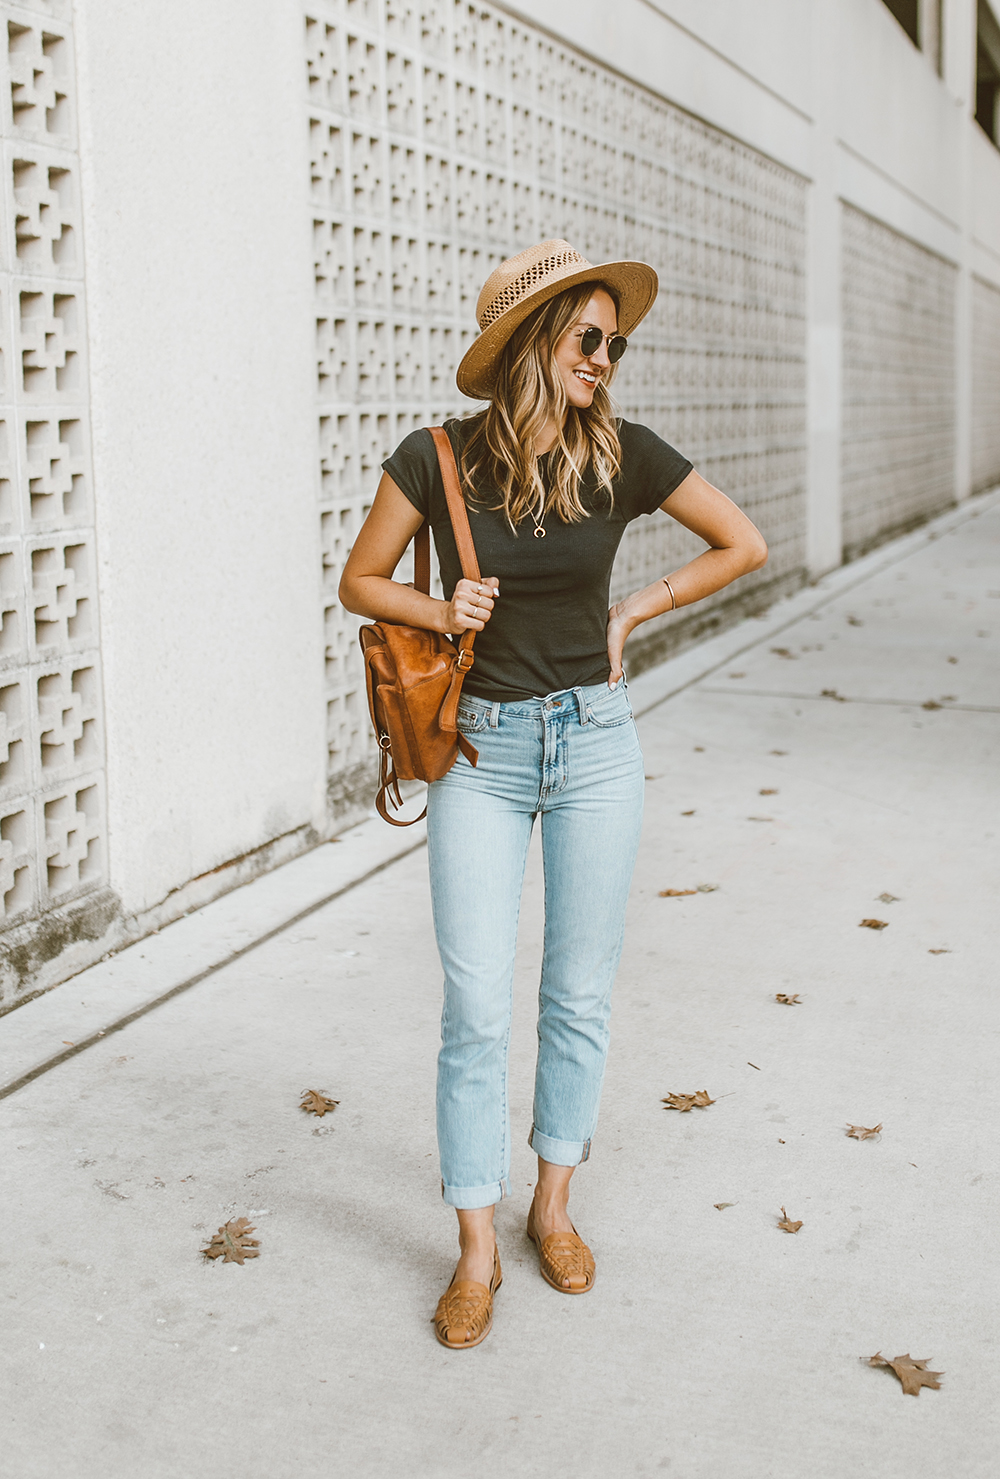 livvyland-blog-olivia-watson-austin-texas-fashion-style-blog-nisolo-ecuador-huarche-sandals-almond-tee-jeans-outfit-1